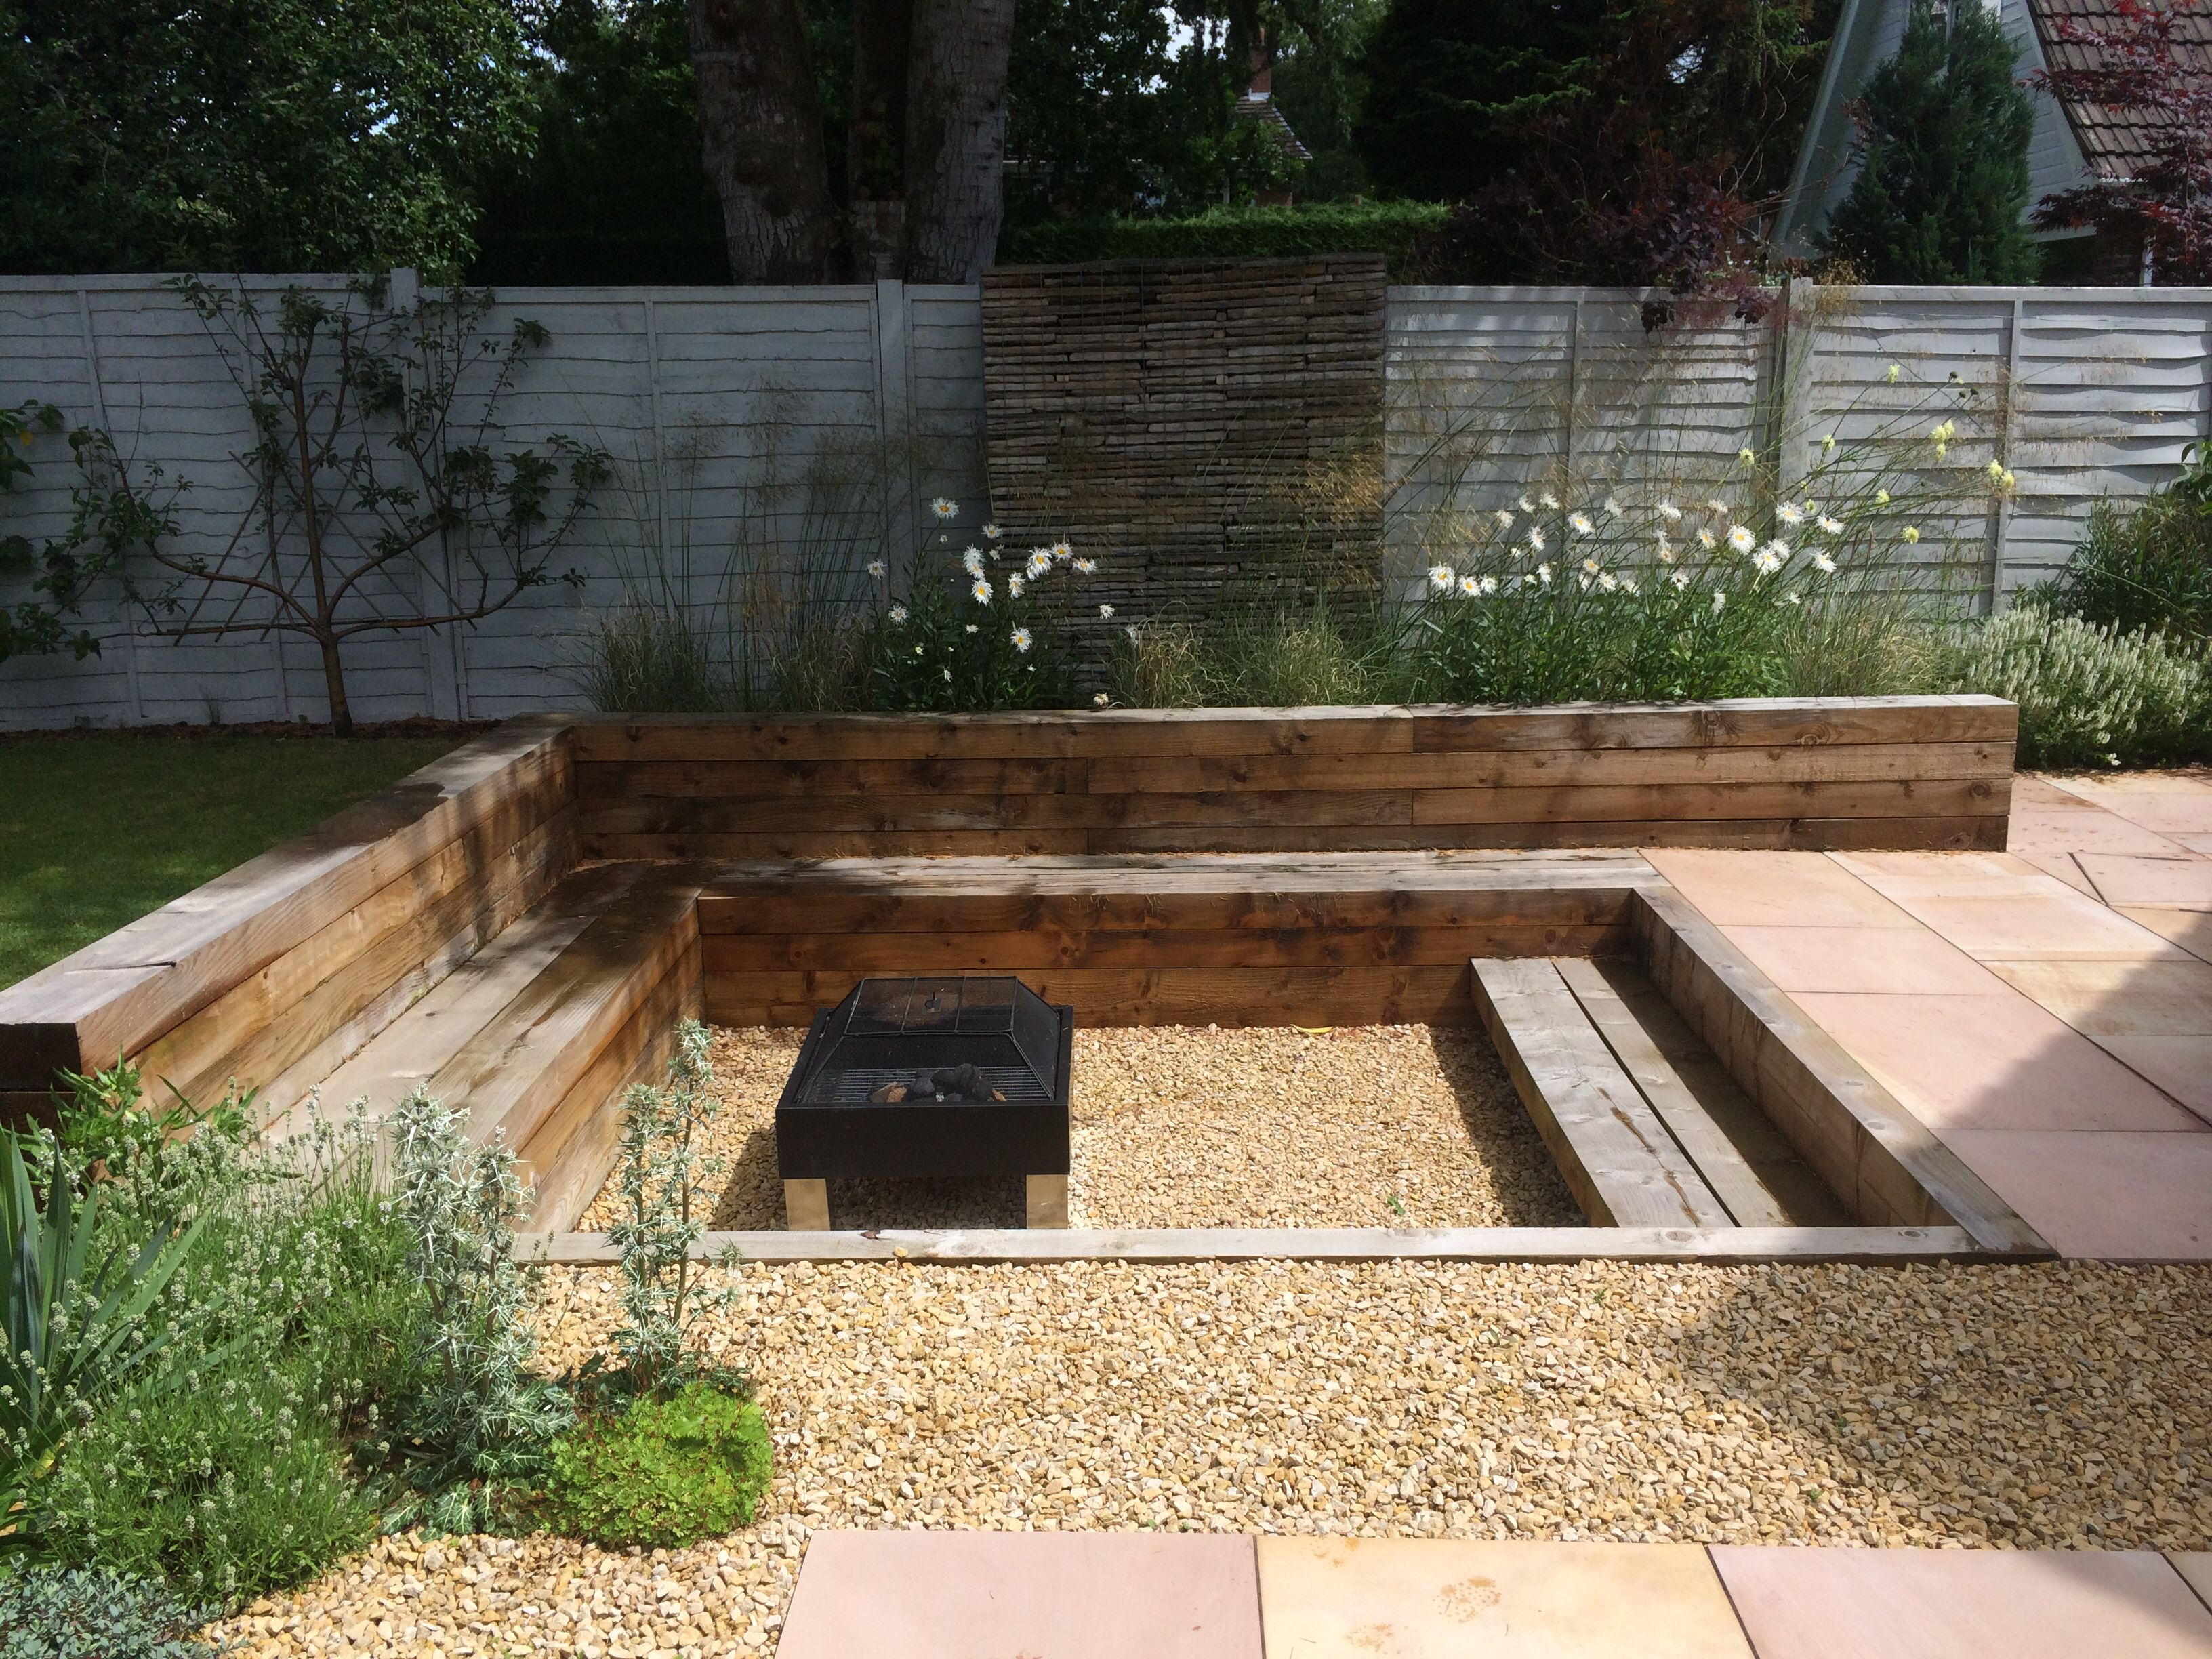 Garden i designed one year on sunken fire pit up cycled for Sunken outdoor seating